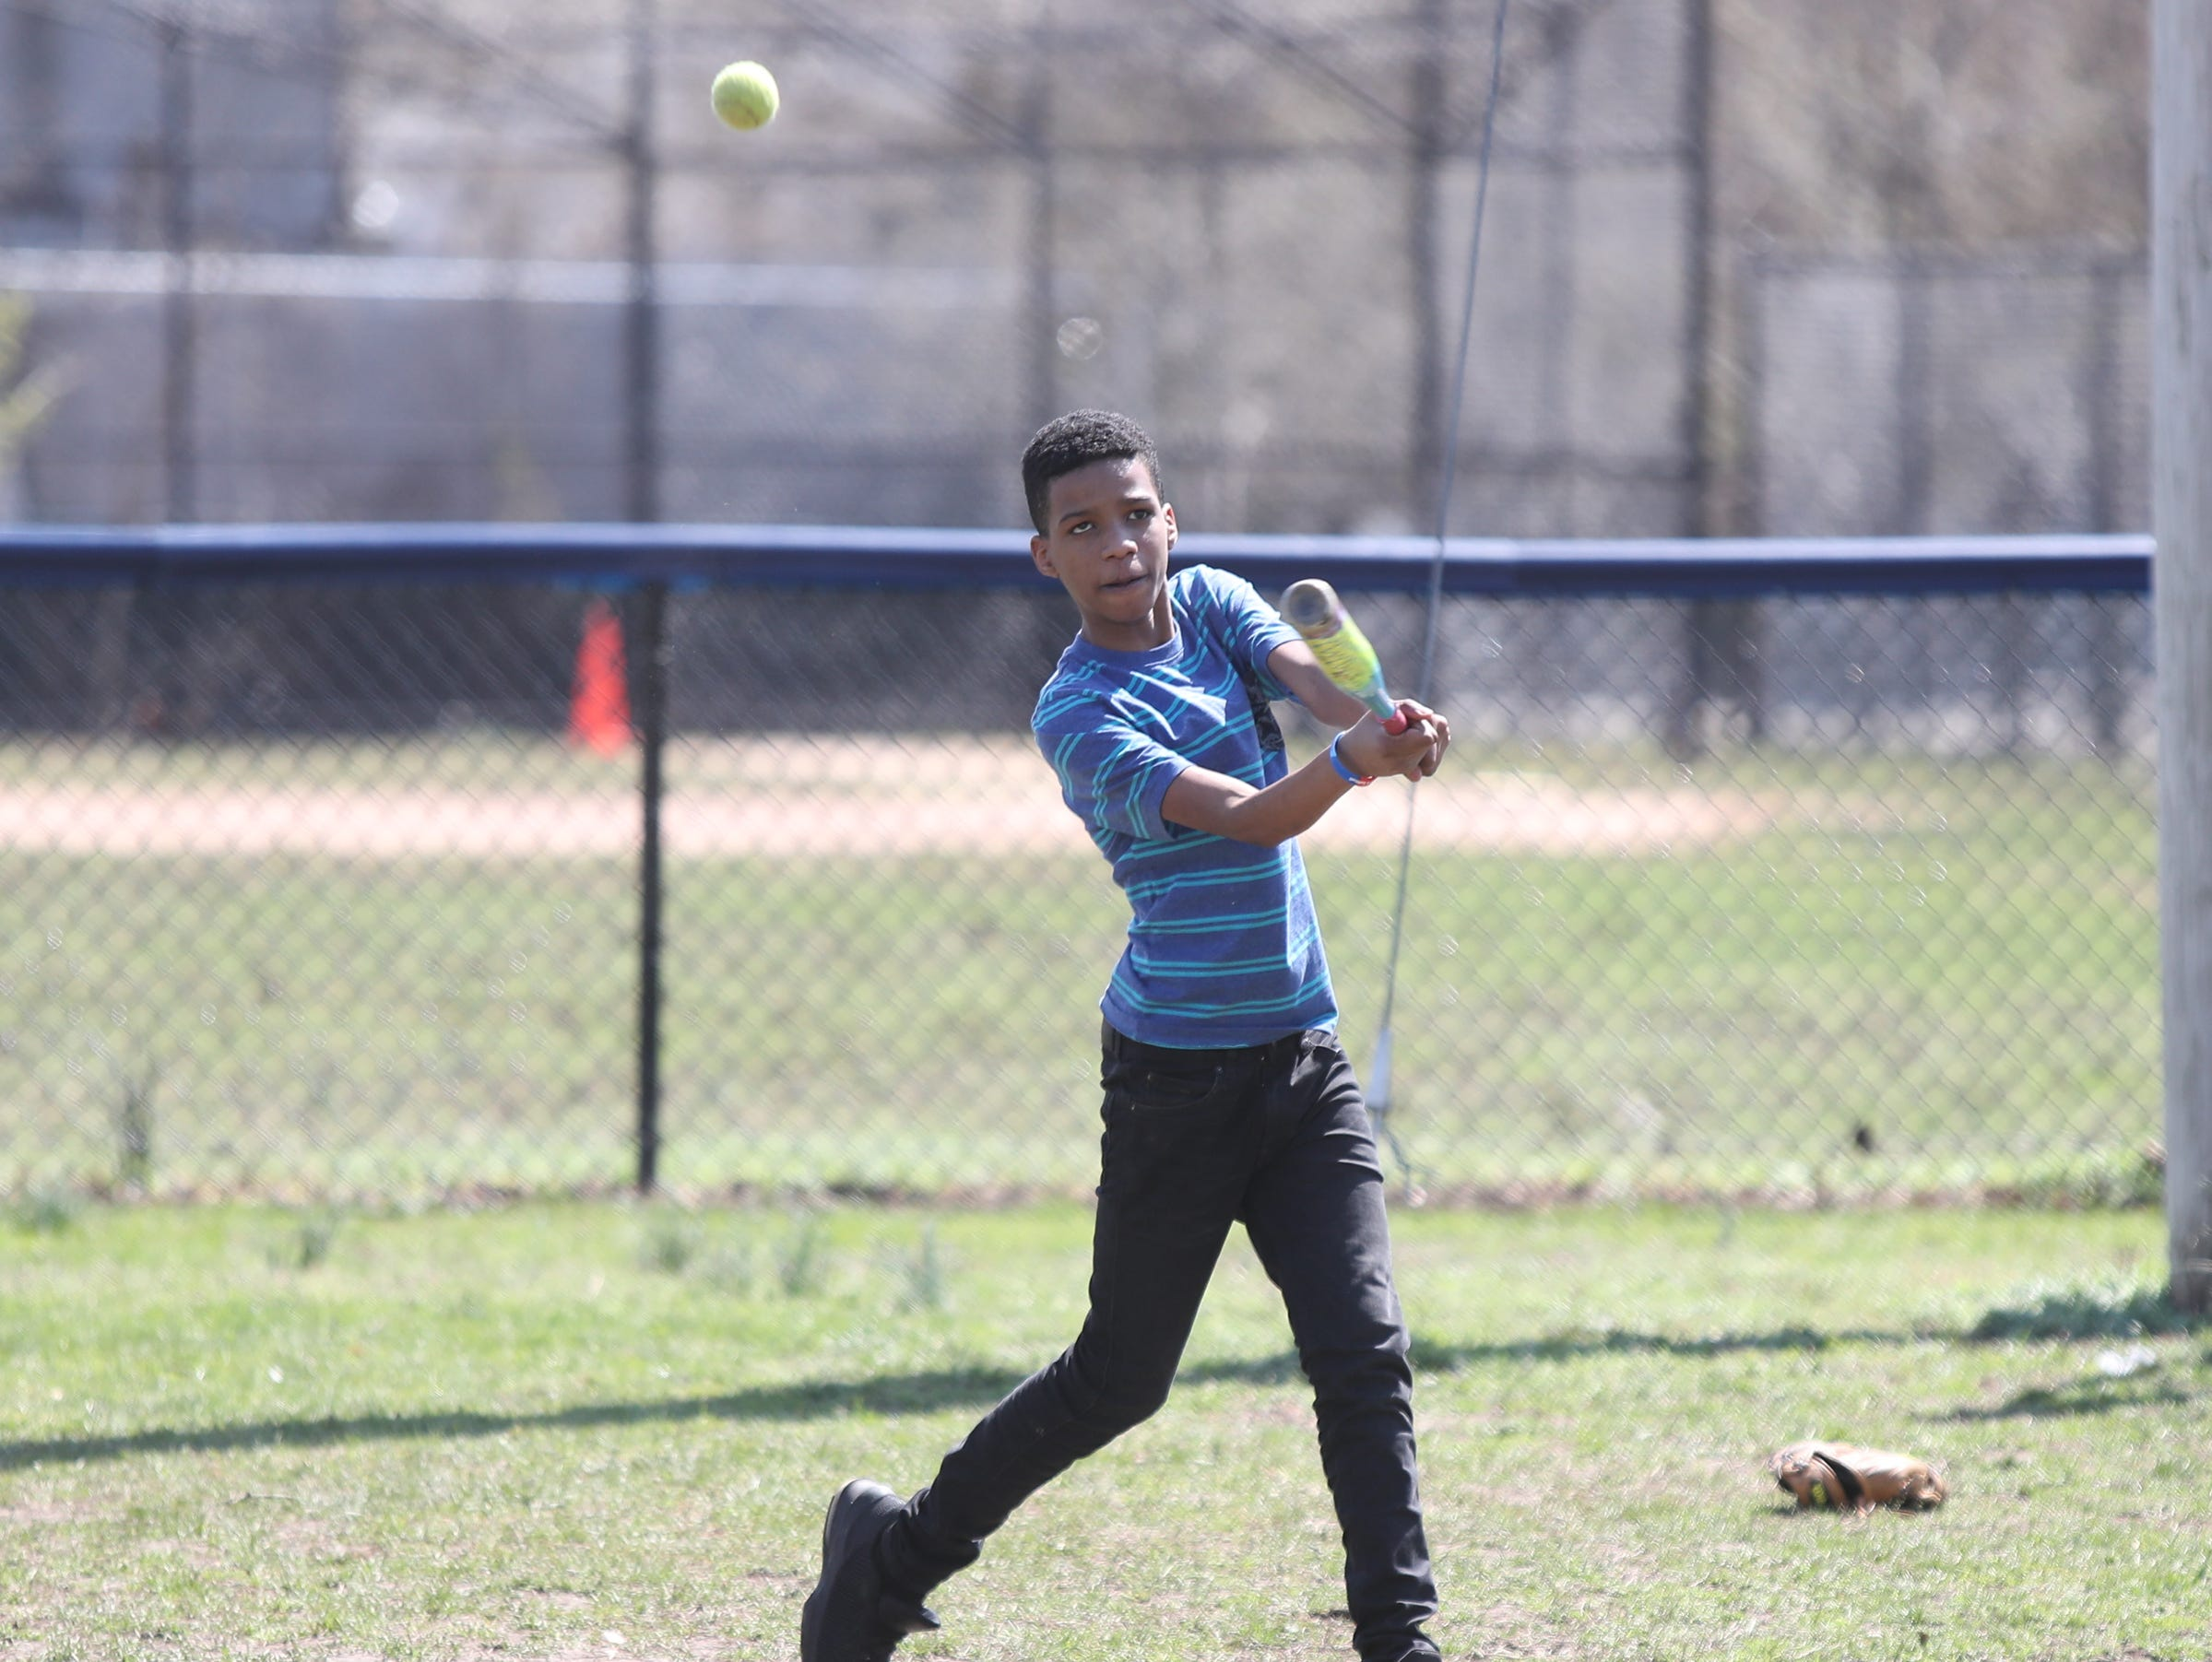 Brian Garcia-Abreu, 11, fouls off a pitch during little league practice at Brush Park on Saturday, April 13, 2019 during Jackie Robinson Day in Mount Vernon.